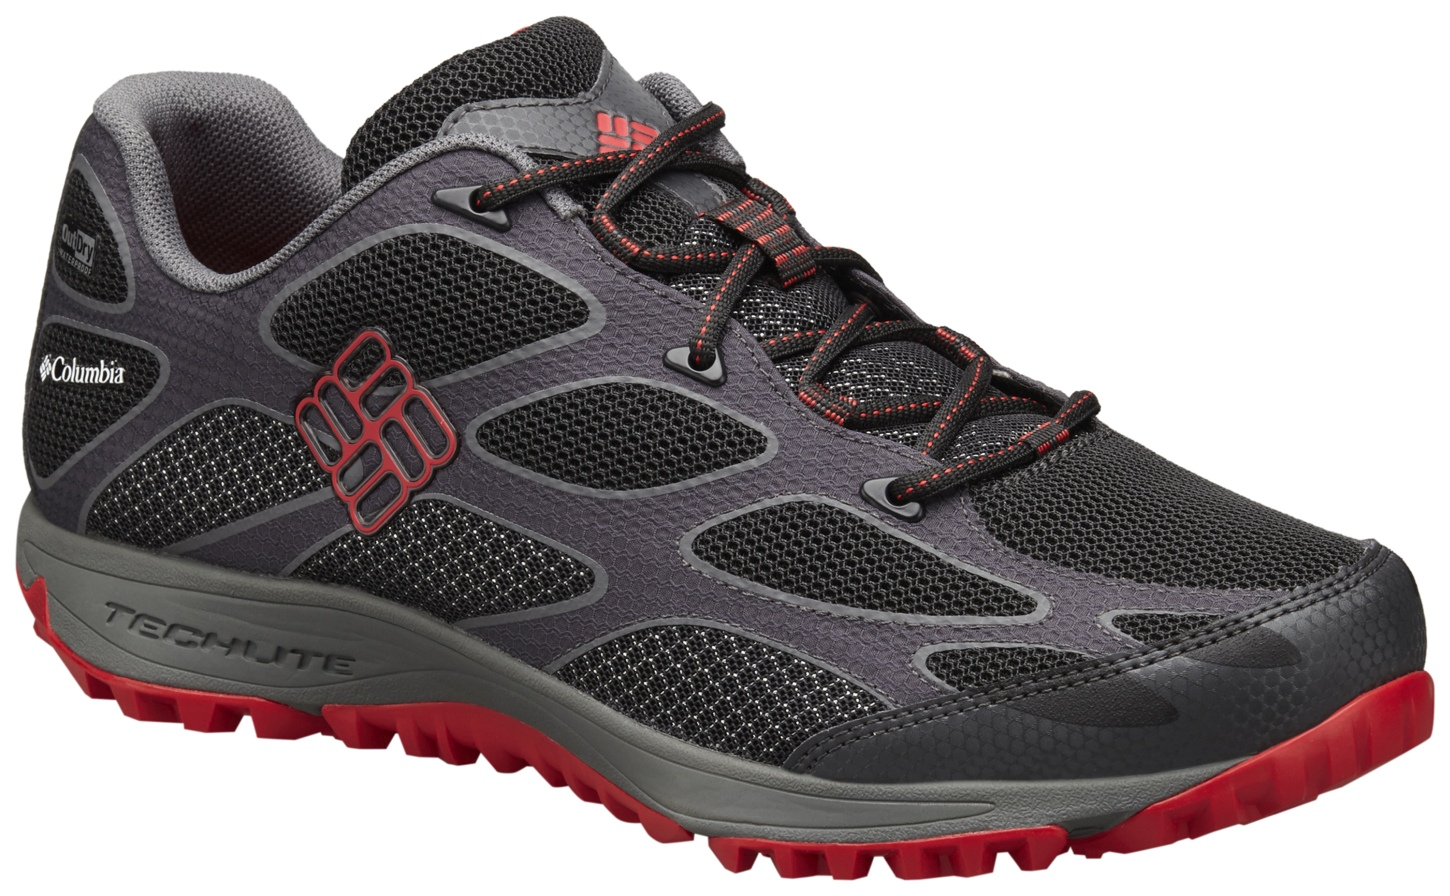 Columbia Men's Conspiracy IV Outdry® Trail Shoes Black, Bright Red-30